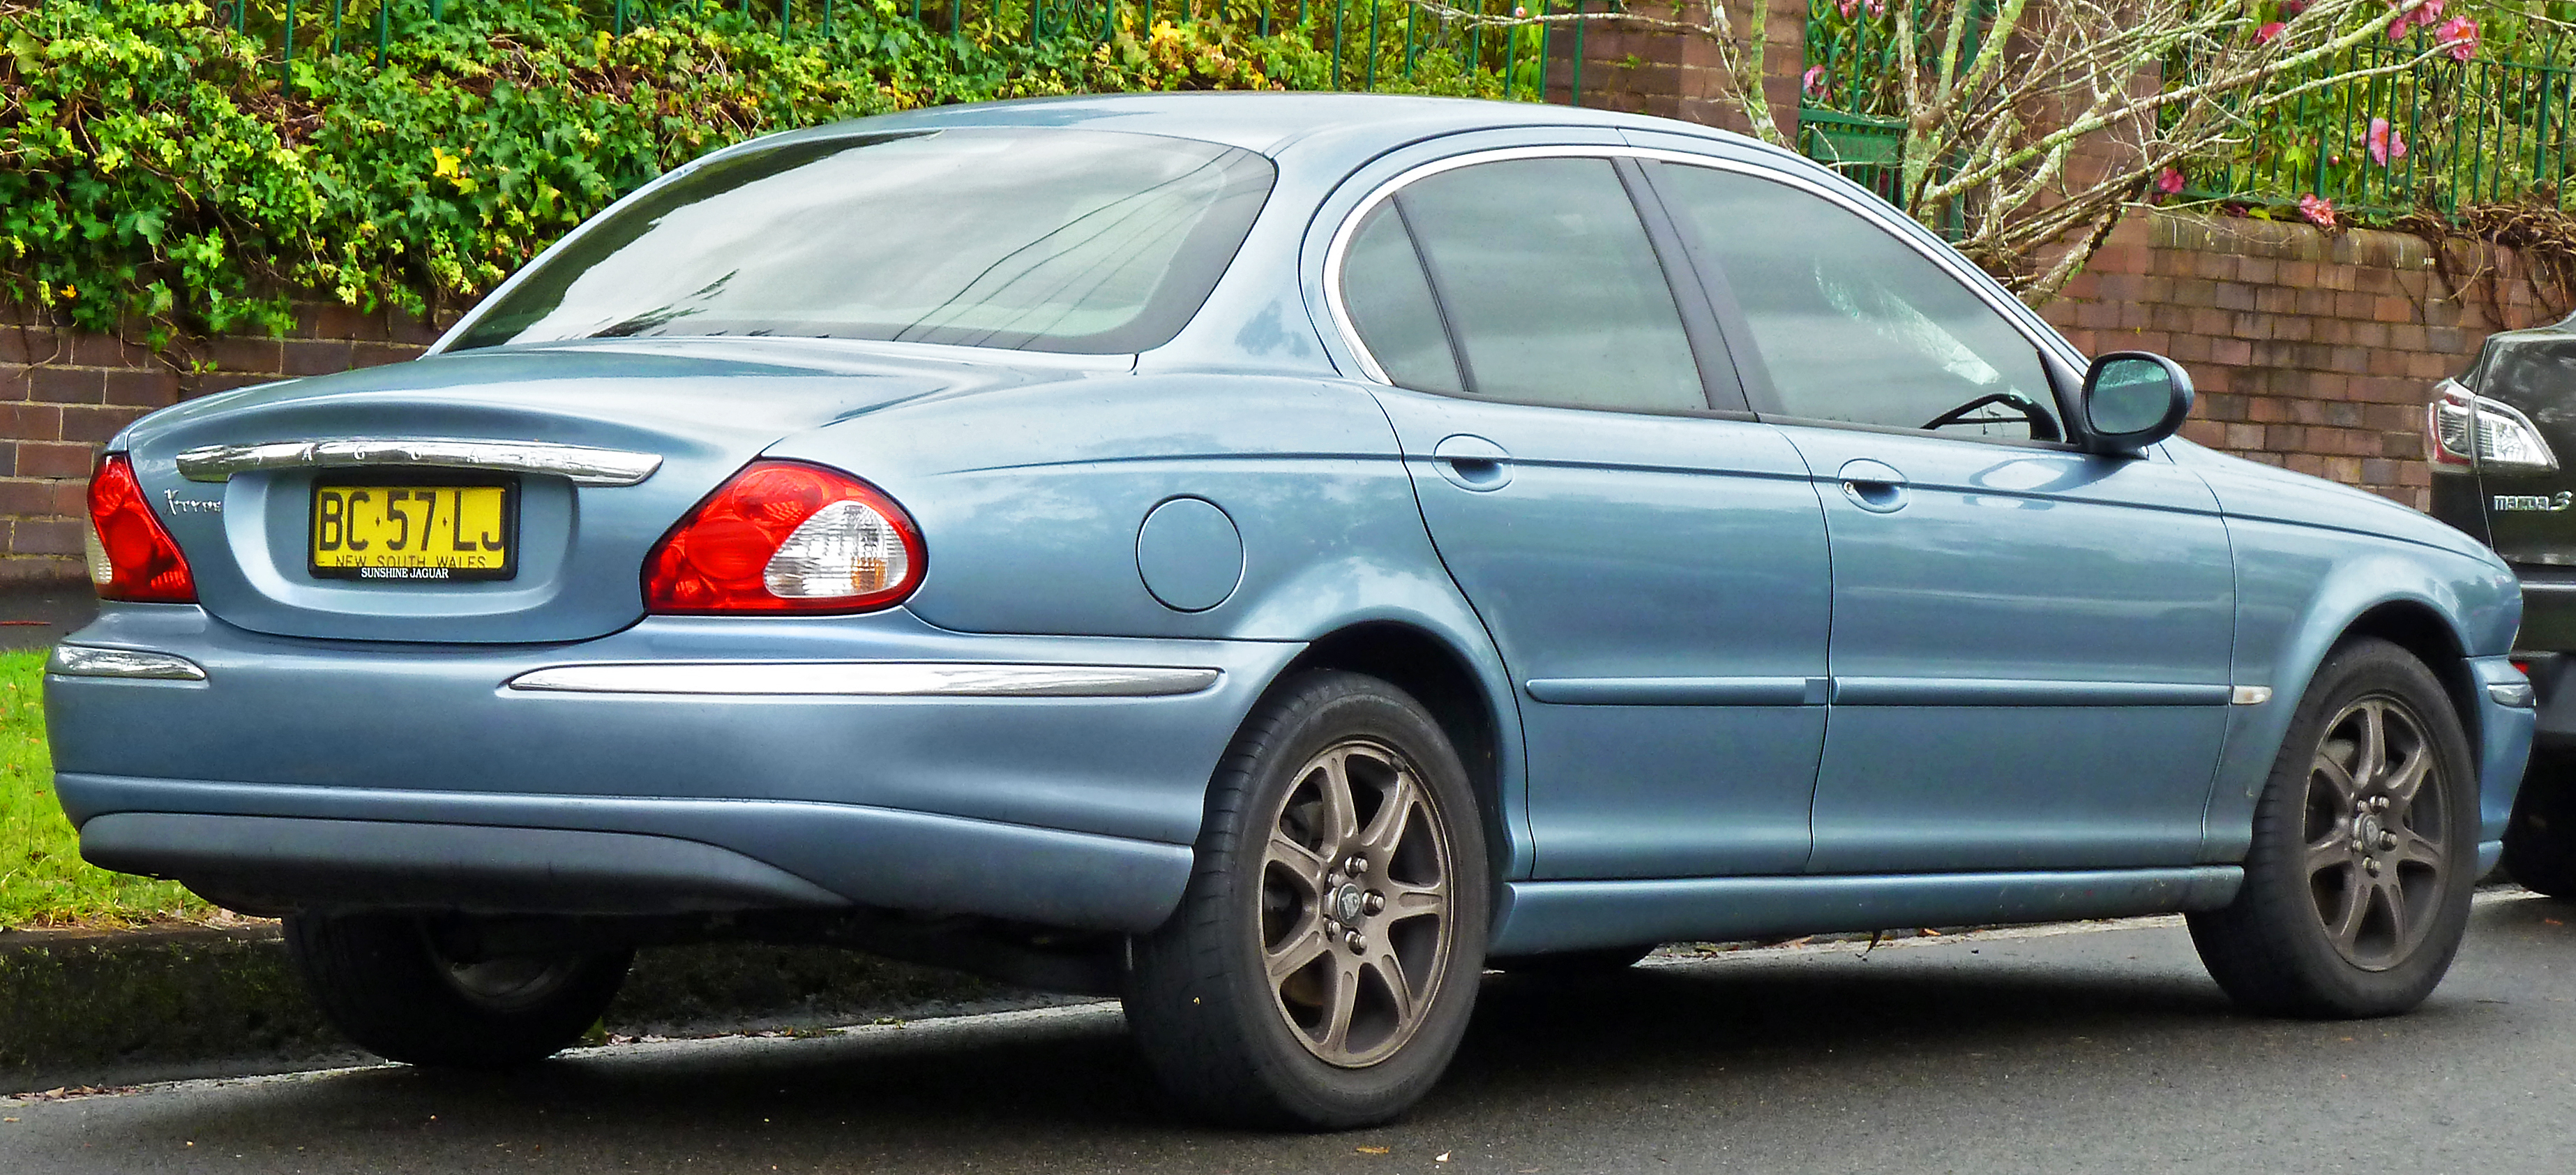 2006 Jaguar X-type #13